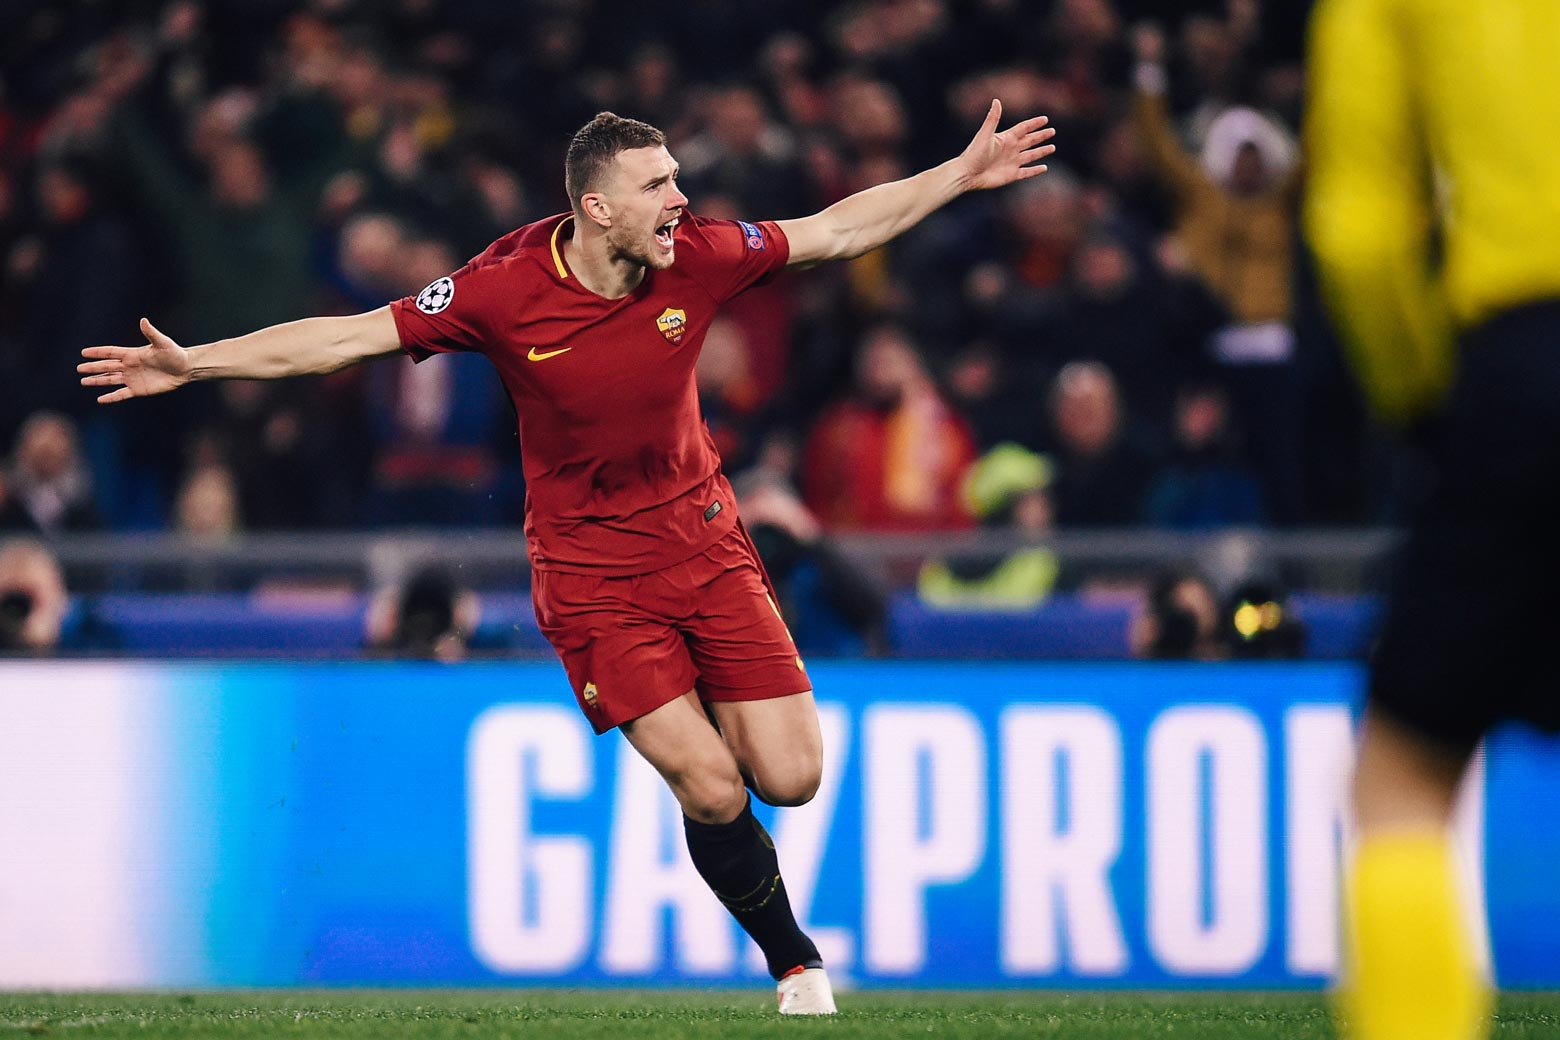 Roma's Bosnian striker Edin Džeko celebrates after scoring during the UEFA Champions League round of 16 second-leg football match against Shakhtar Donetsk on Tuesday at the Olympic Stadium in Rome.